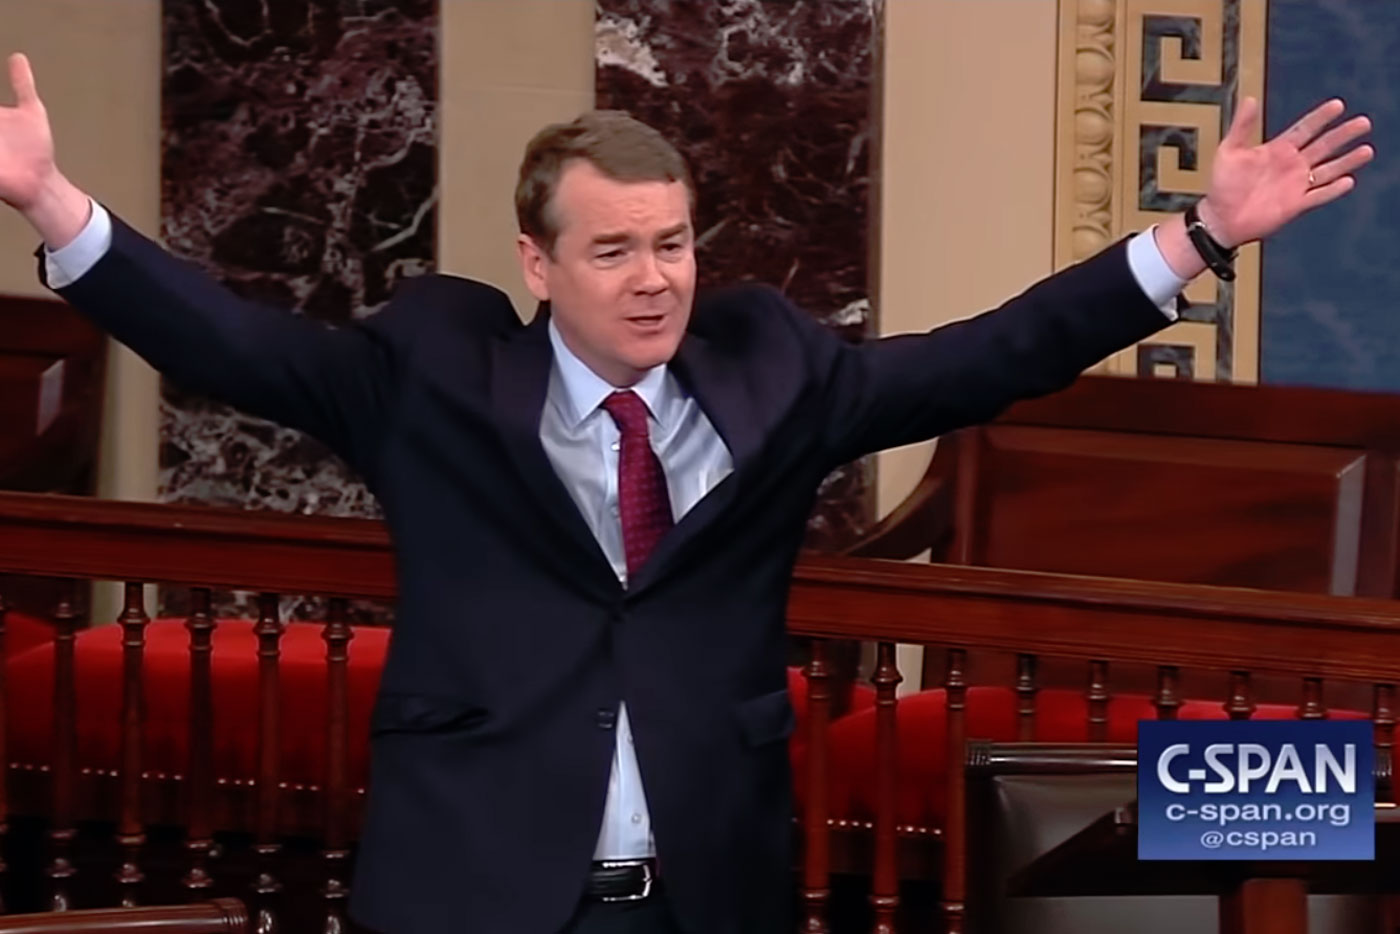 Photo: Michael Bennet Rips Ted Cruz | Screencpa - C-SPAN